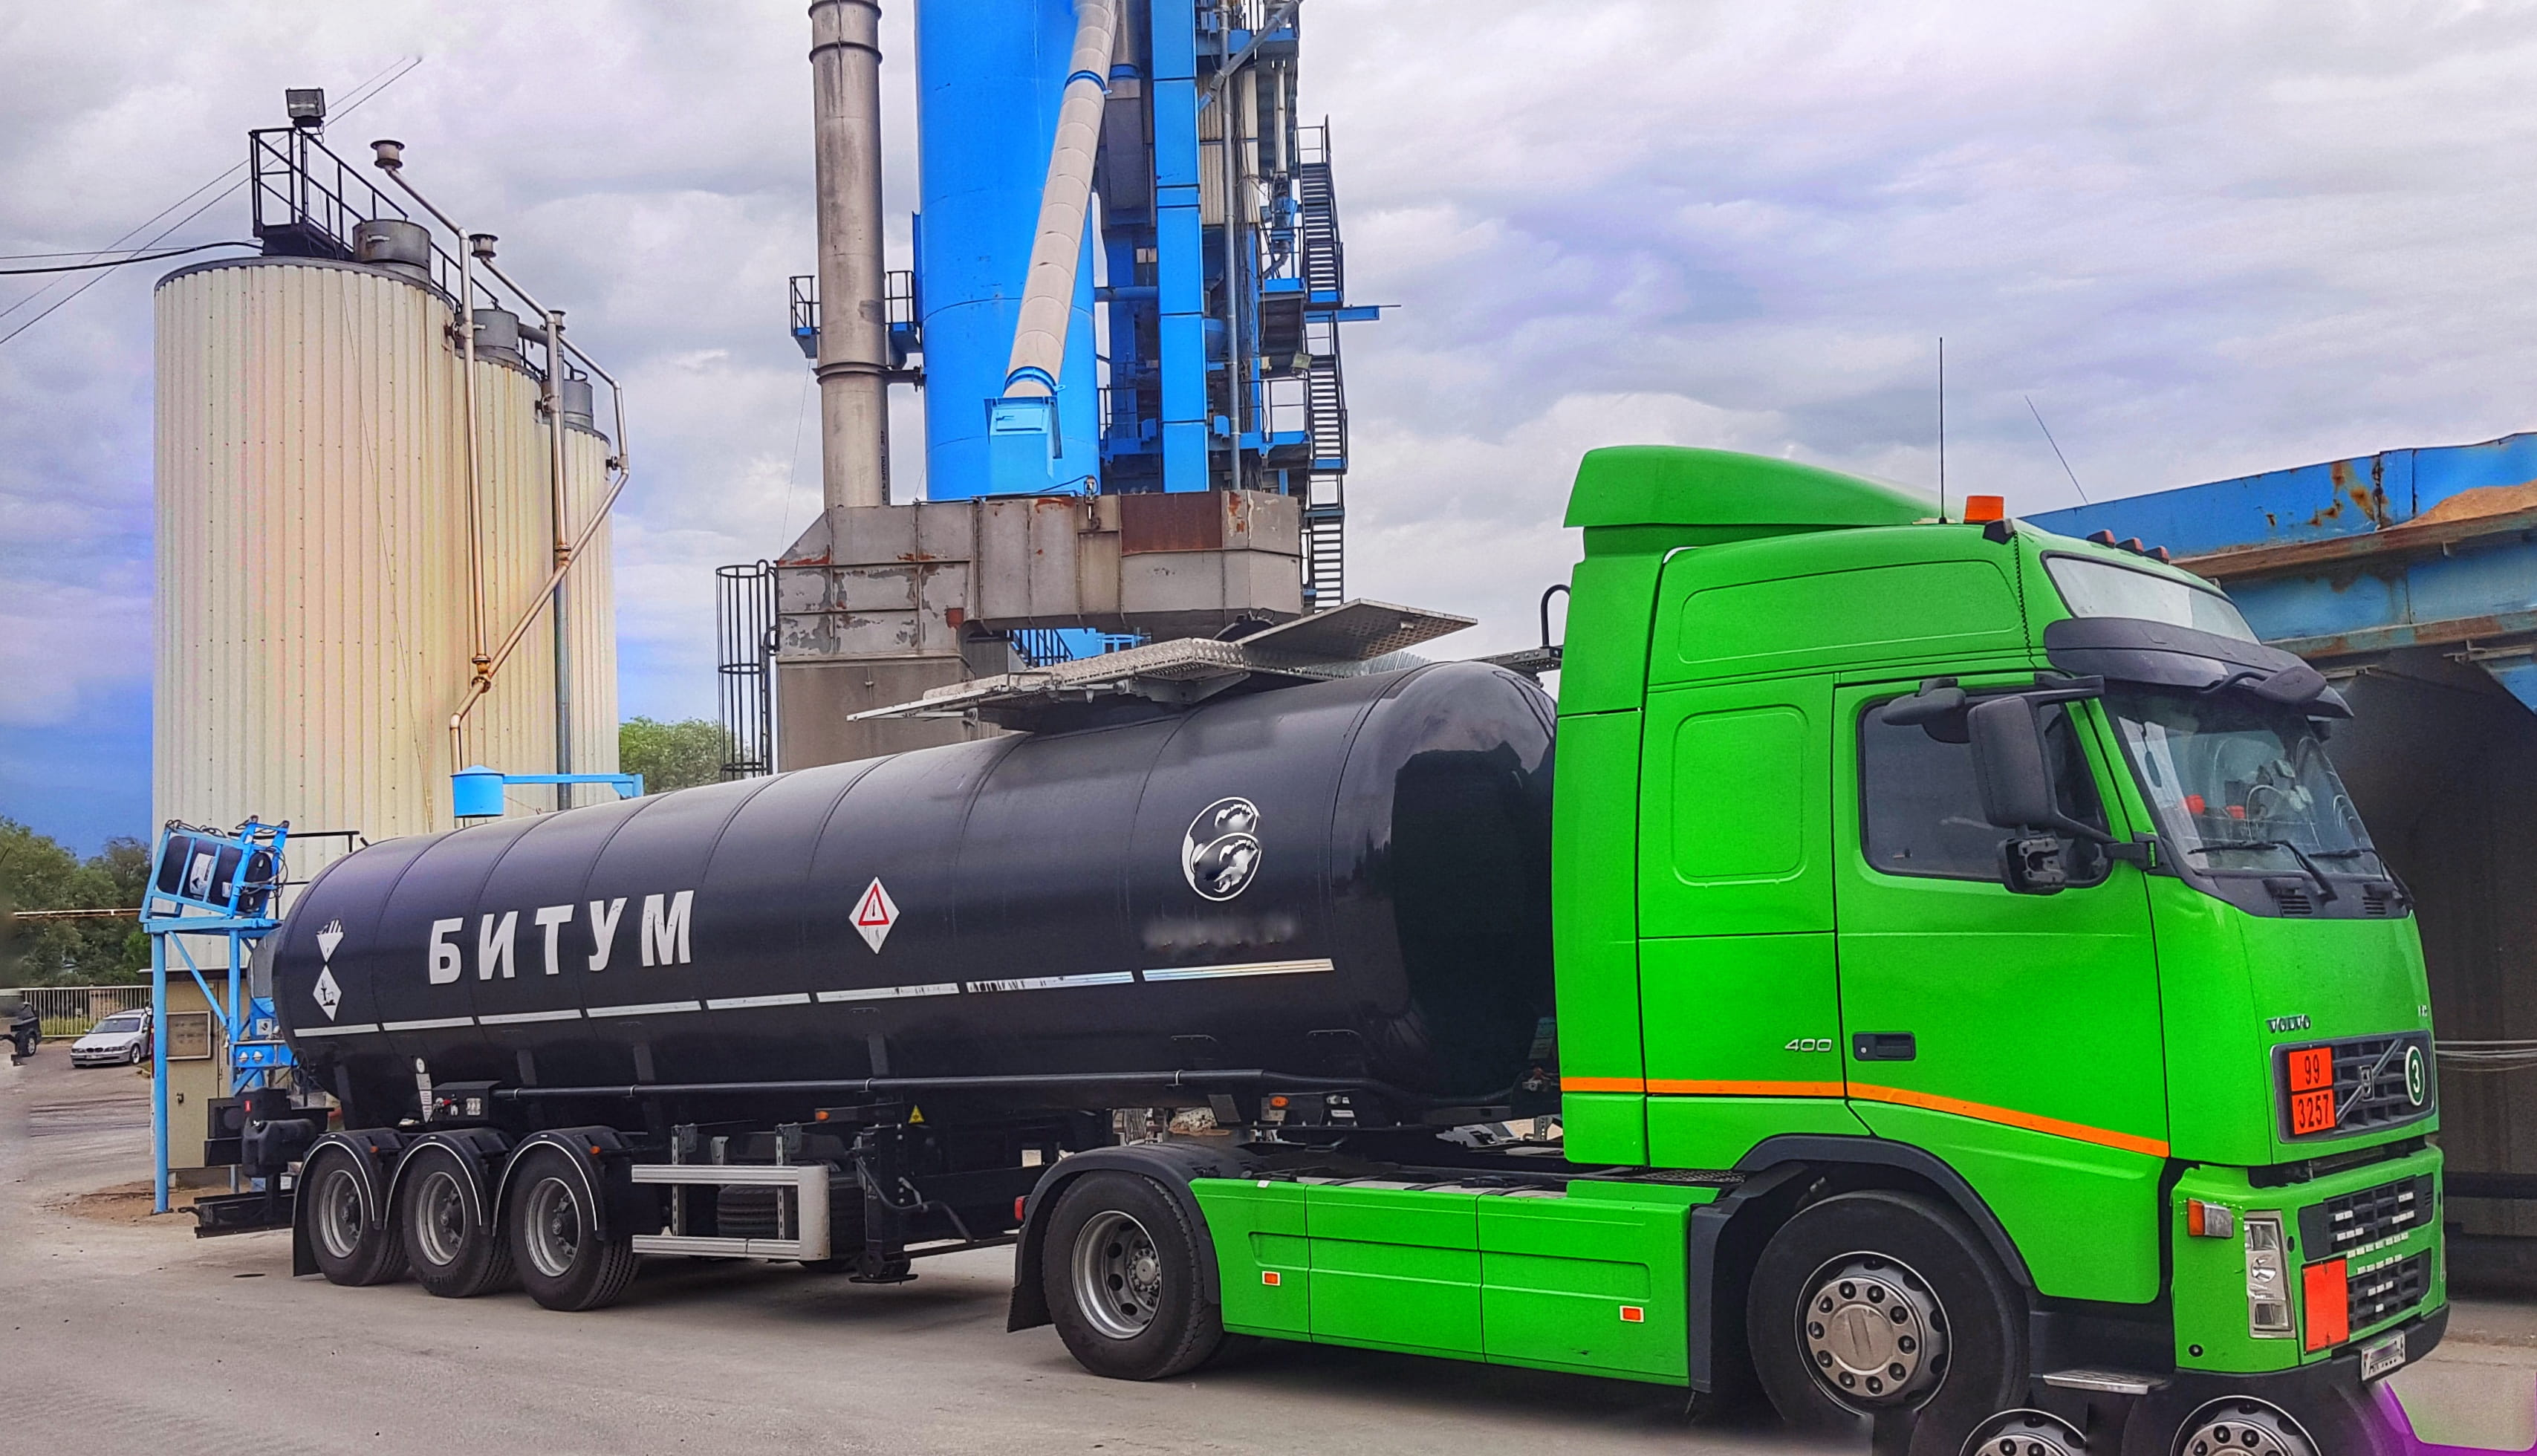 DYM Resources starts loading Polymer Modified Bitumen